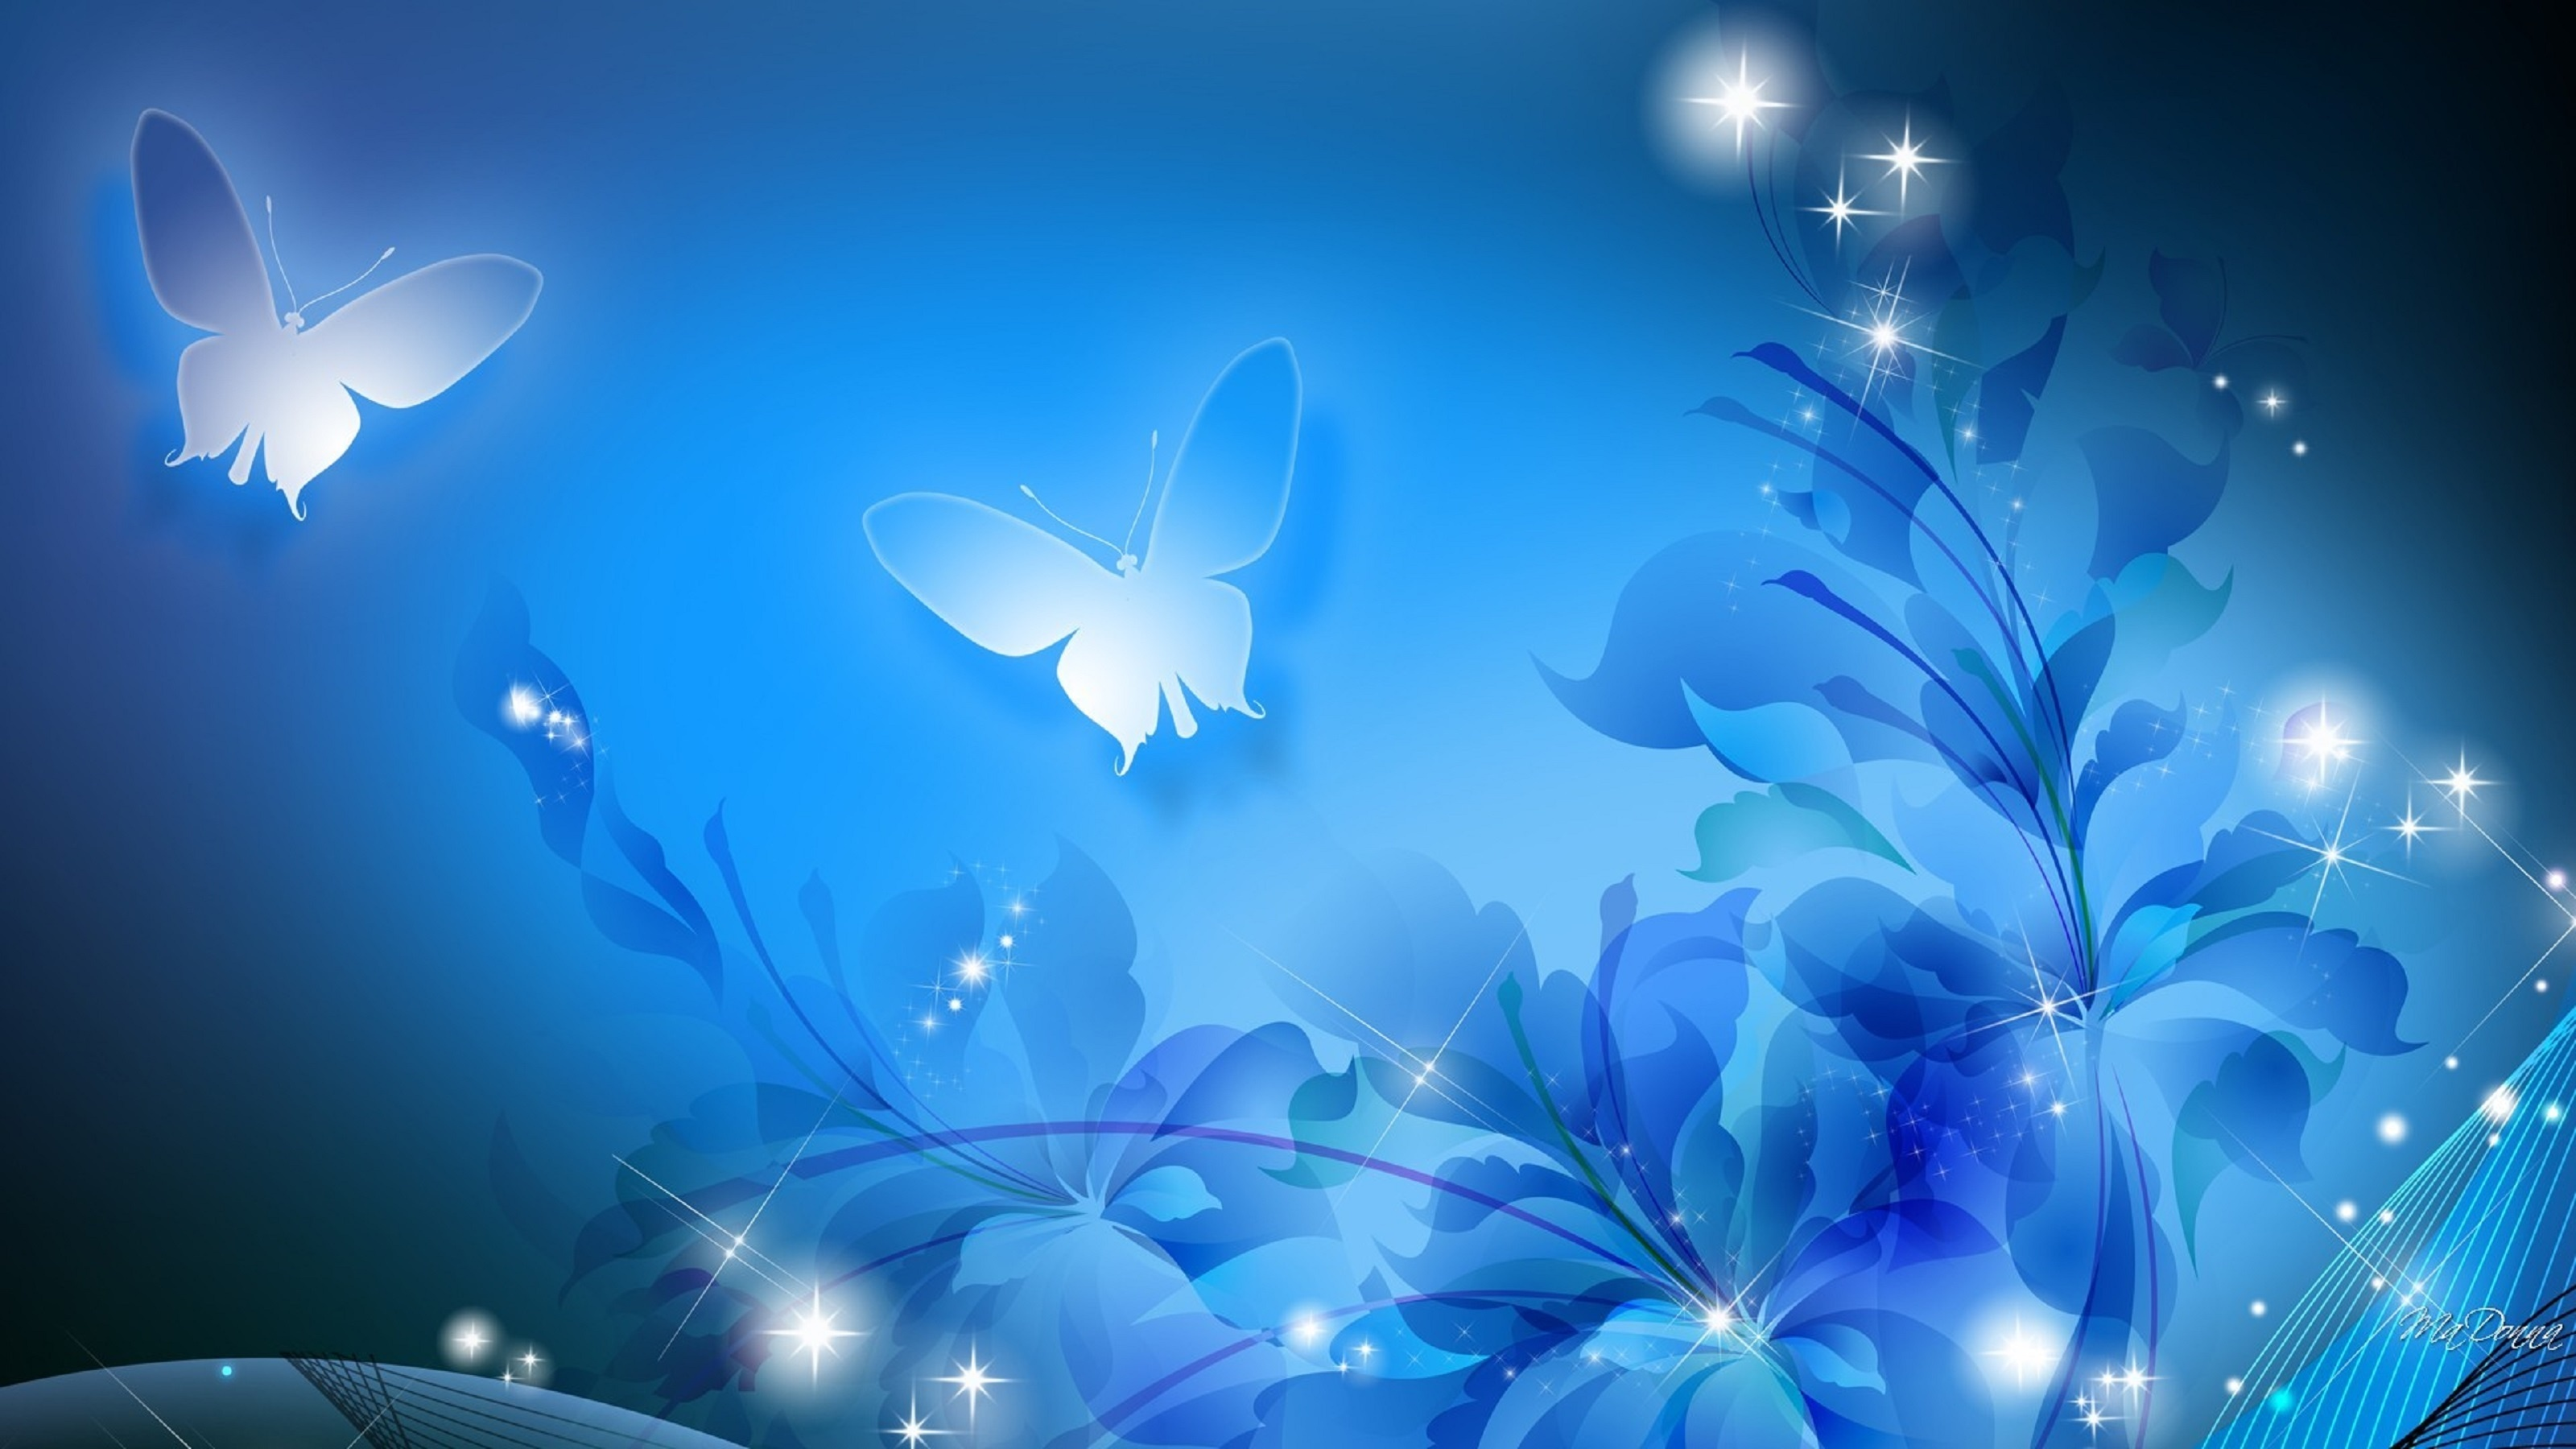 blue colour flowers hd wallpapers 35 page 2 of 3 dzbcorg